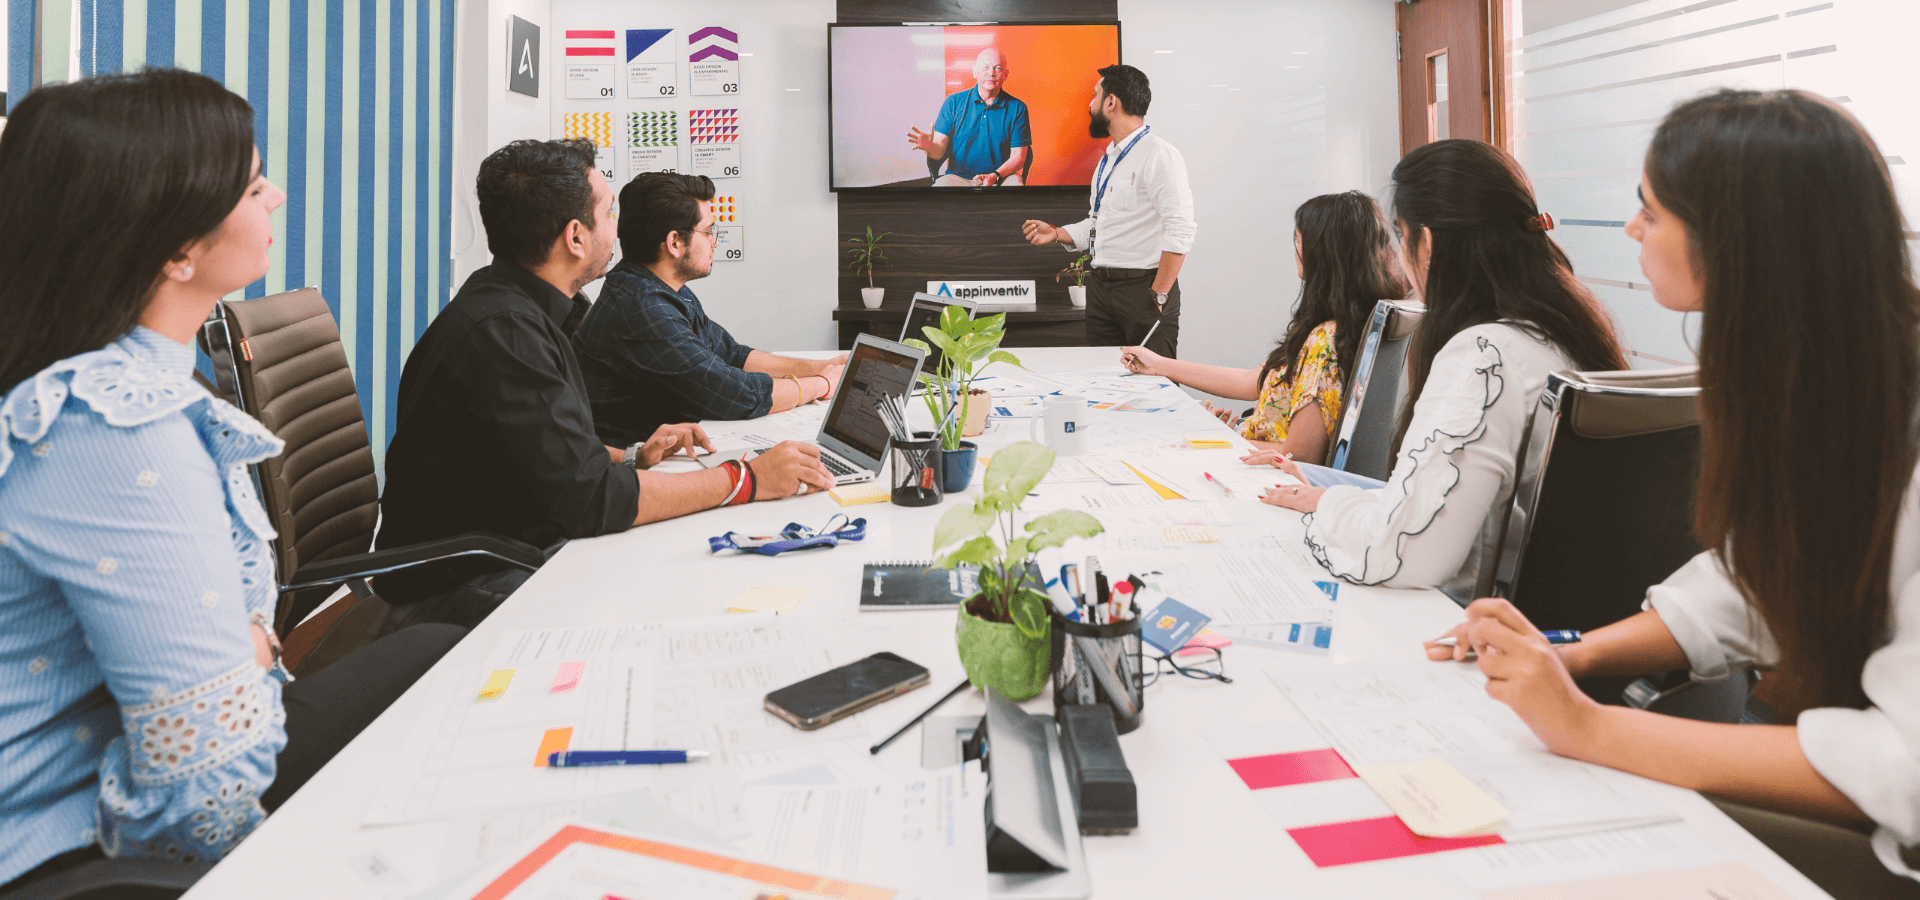 Appinventiv UX Review Team's Client Meeting